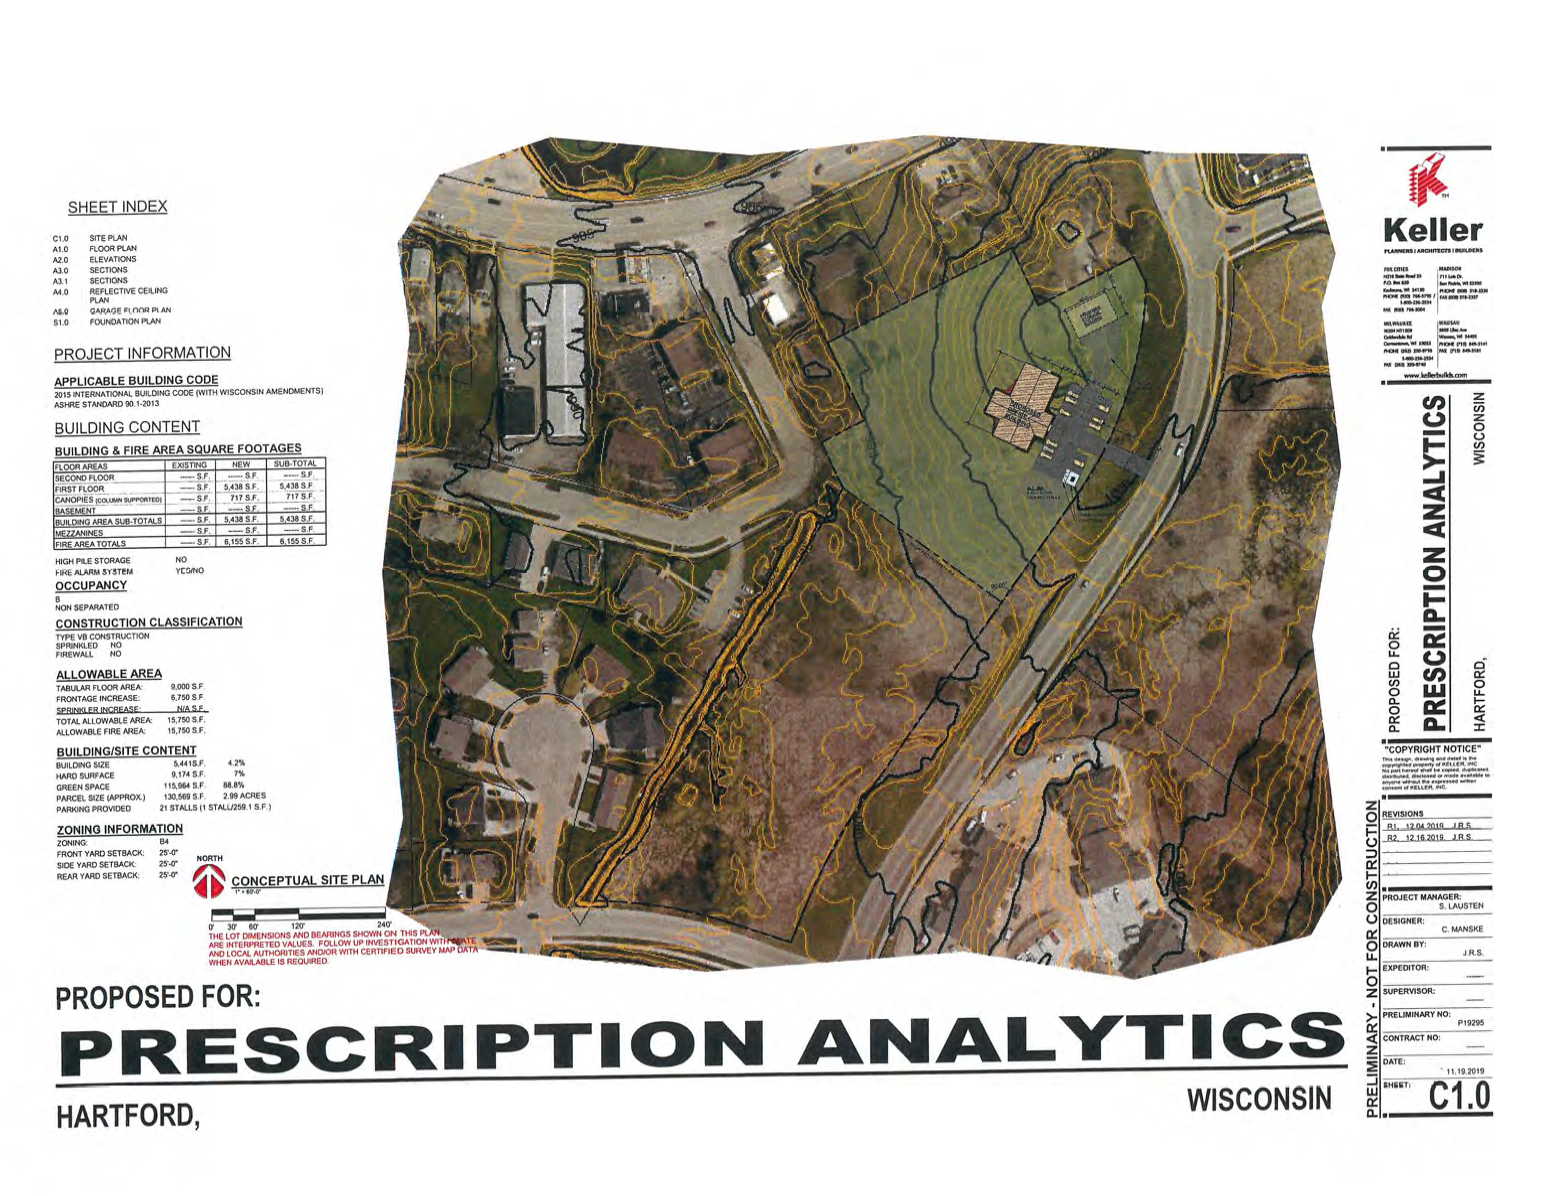 Prescription Analytics - Site Plan